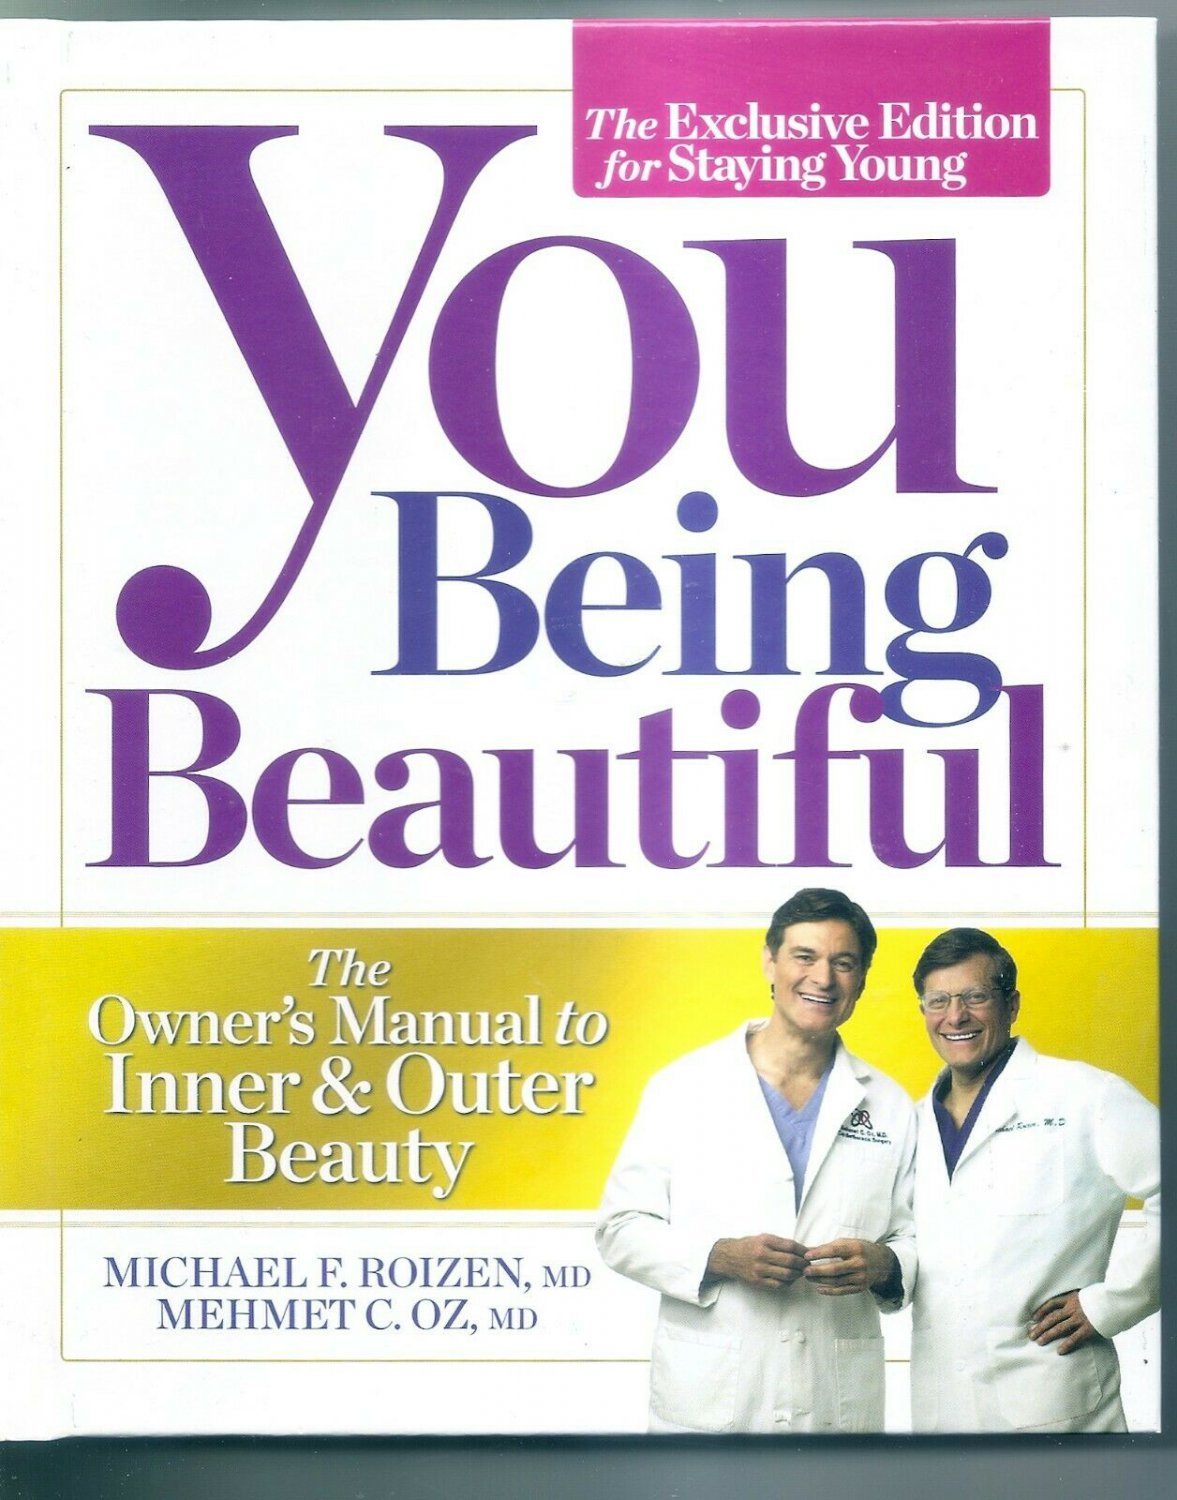 You Being Beautiful - The Exclusive Edition For Staying Young - The Owner's Manu